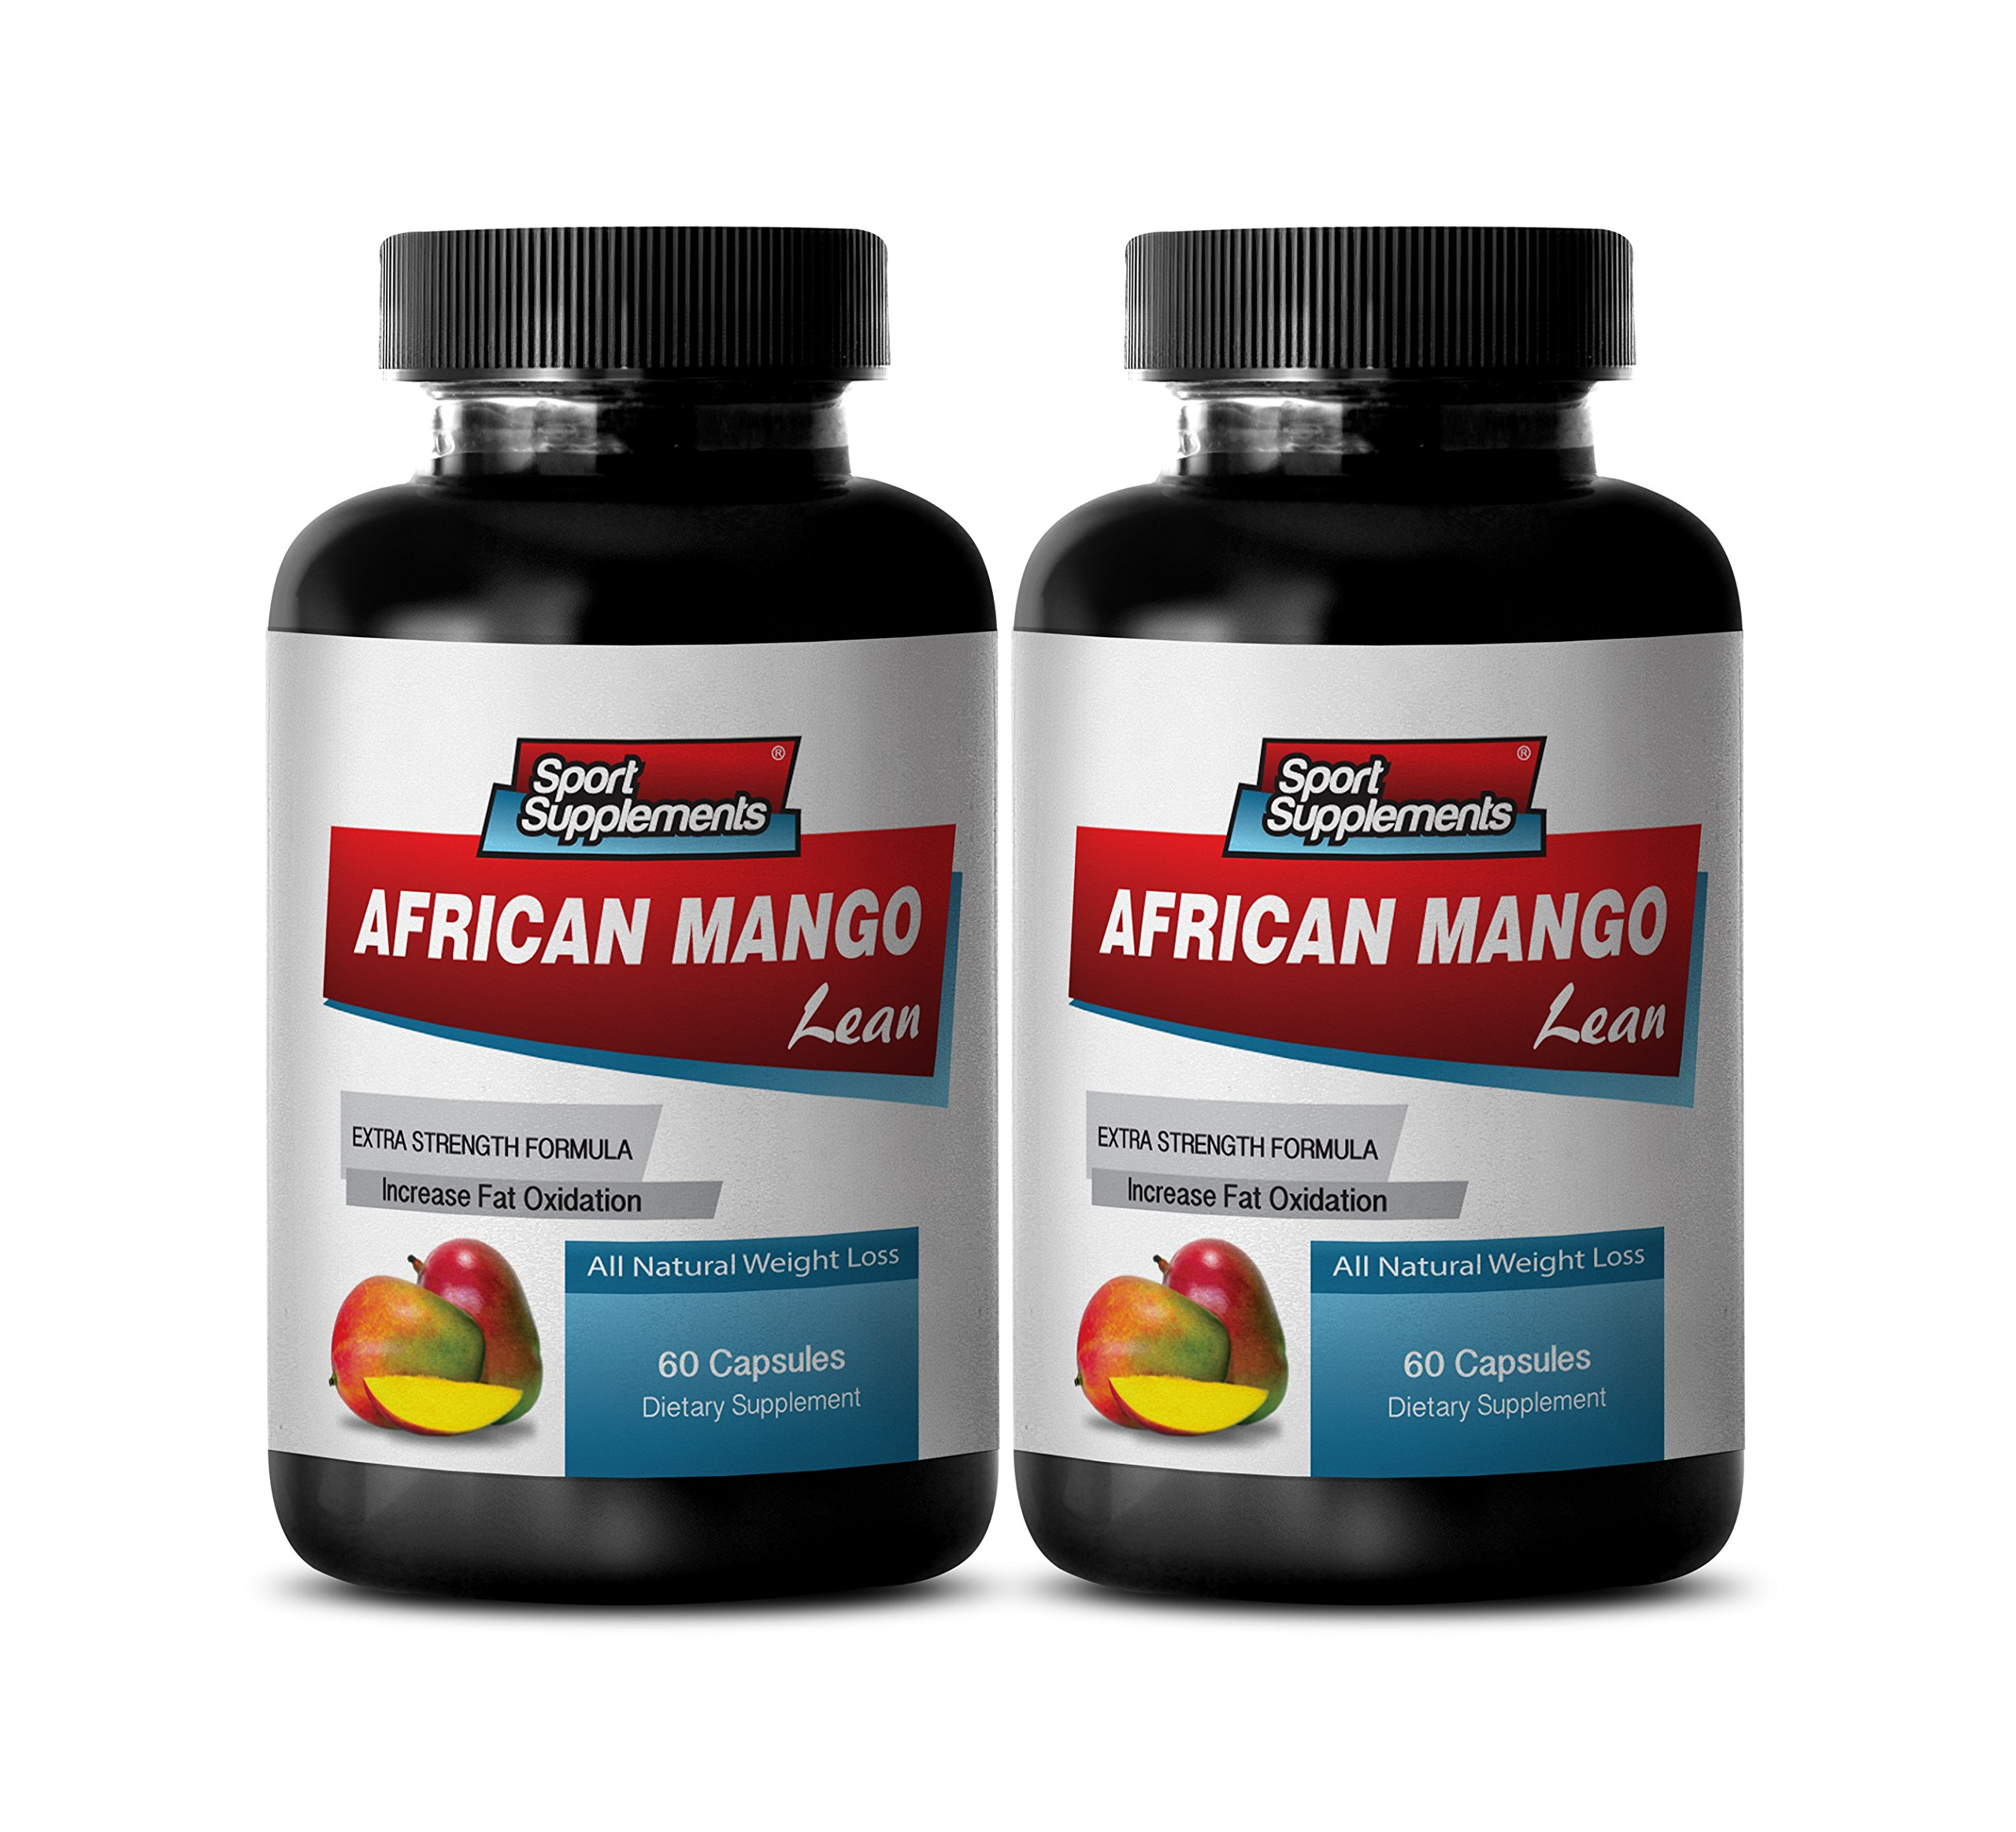 fat burner and metabolism booster - AFRICAN MANGO 1200 mg - ALL NATURAL WEIGHT LOSS DIETARY SUPPLEMENT - african mango extract pure - 2 Bottles (120 Capsules)